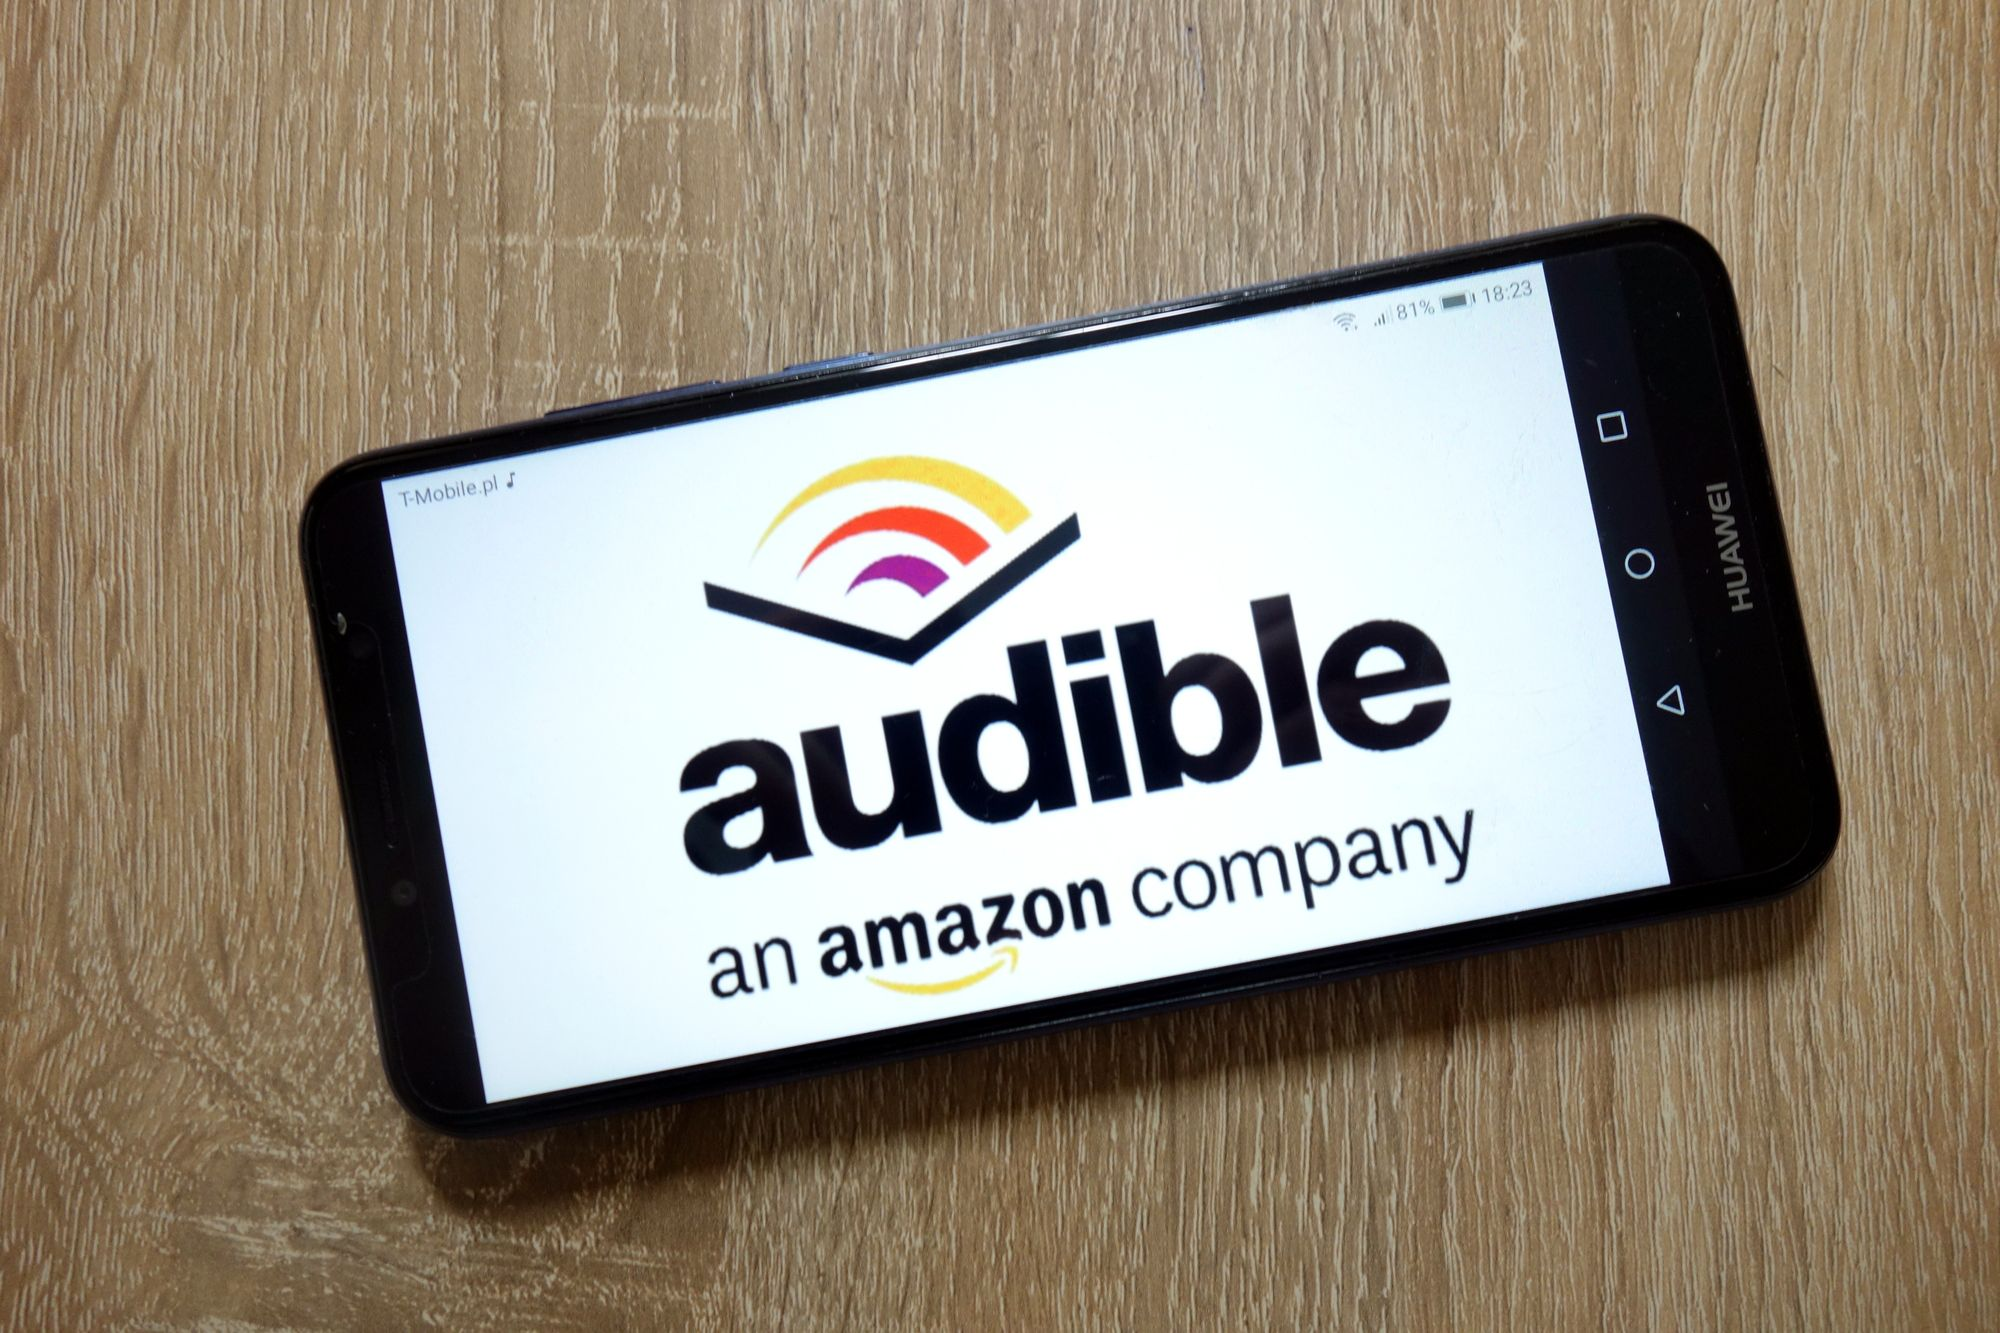 How to Use the Audible App to Listen to Books on the Go